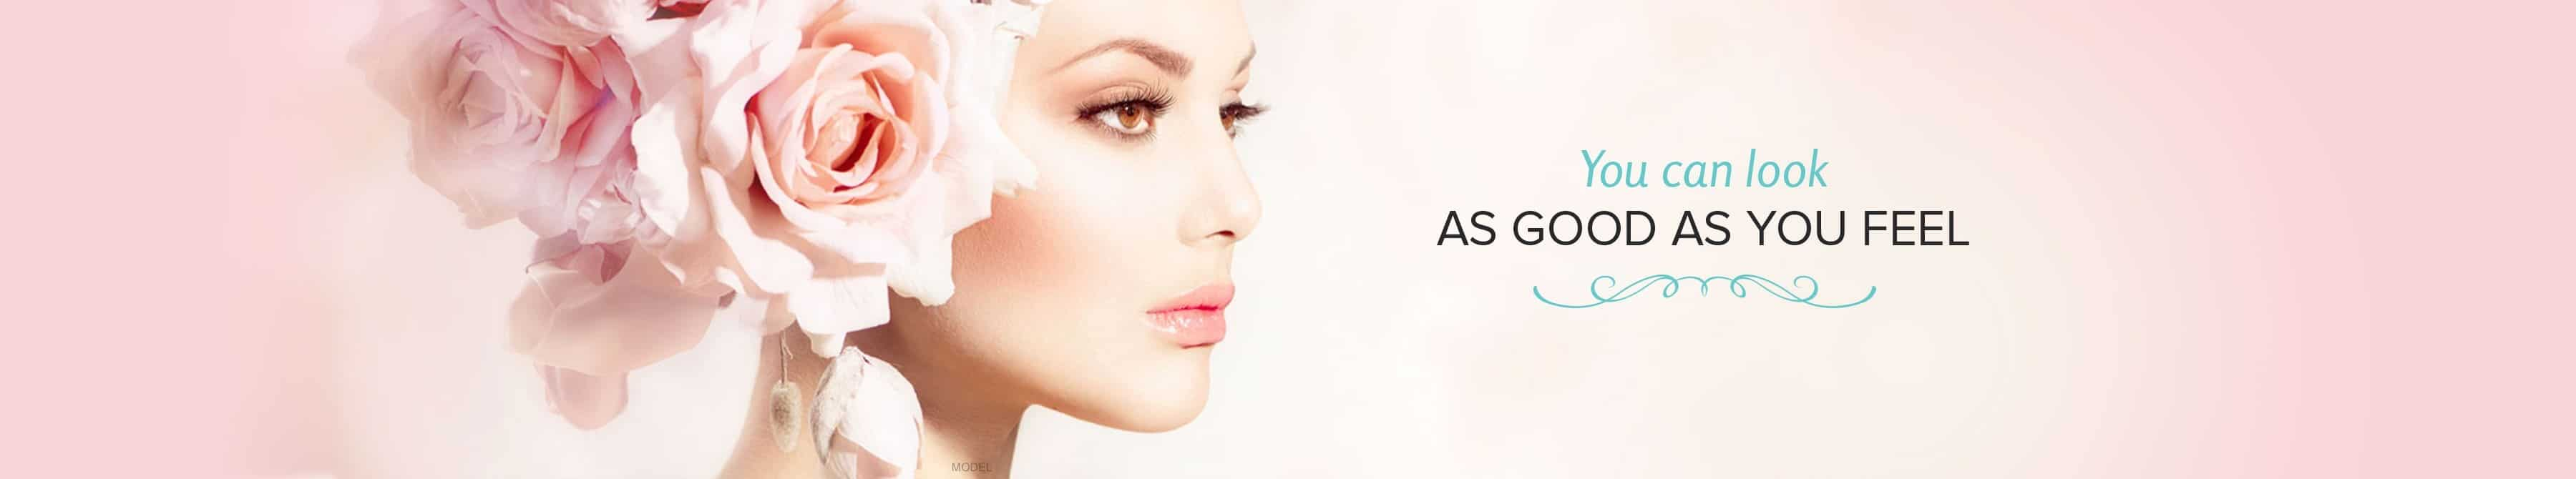 LUX Med Spa in Atlanta | Buckhead Plastic Surgery | Cosmetic Treatment